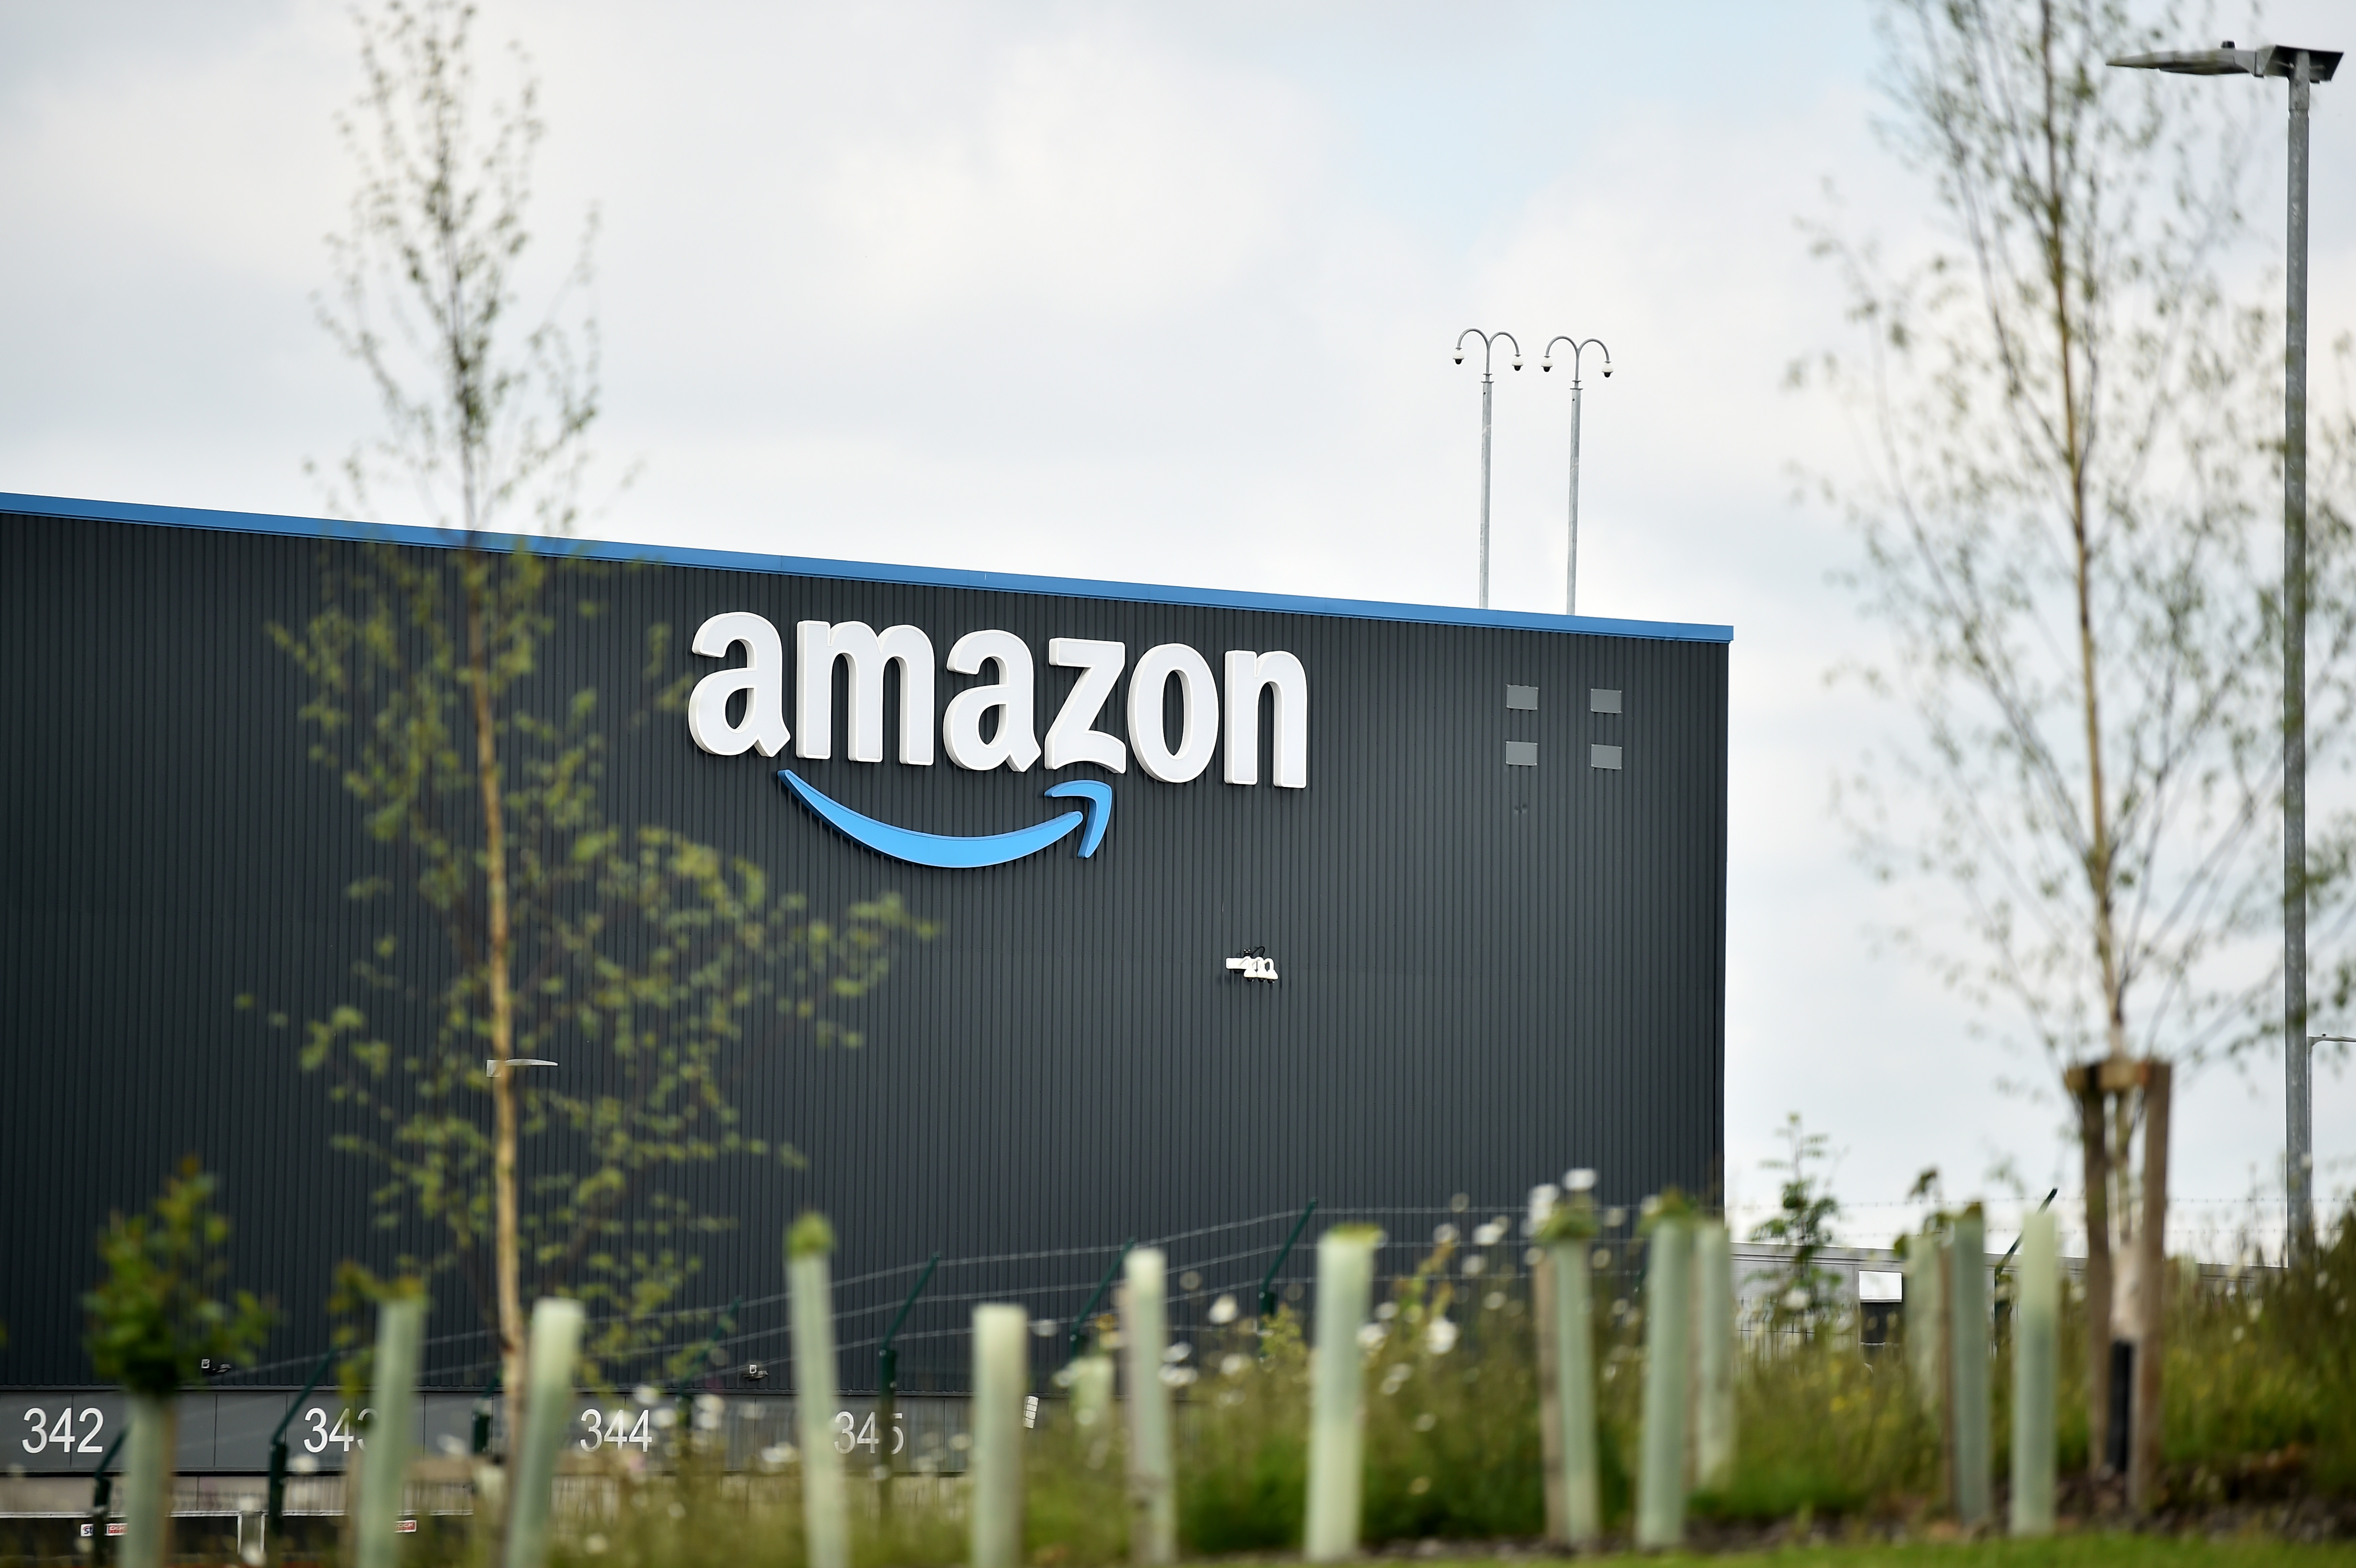 Amazon announces new resale products in response to backlash stock destruction